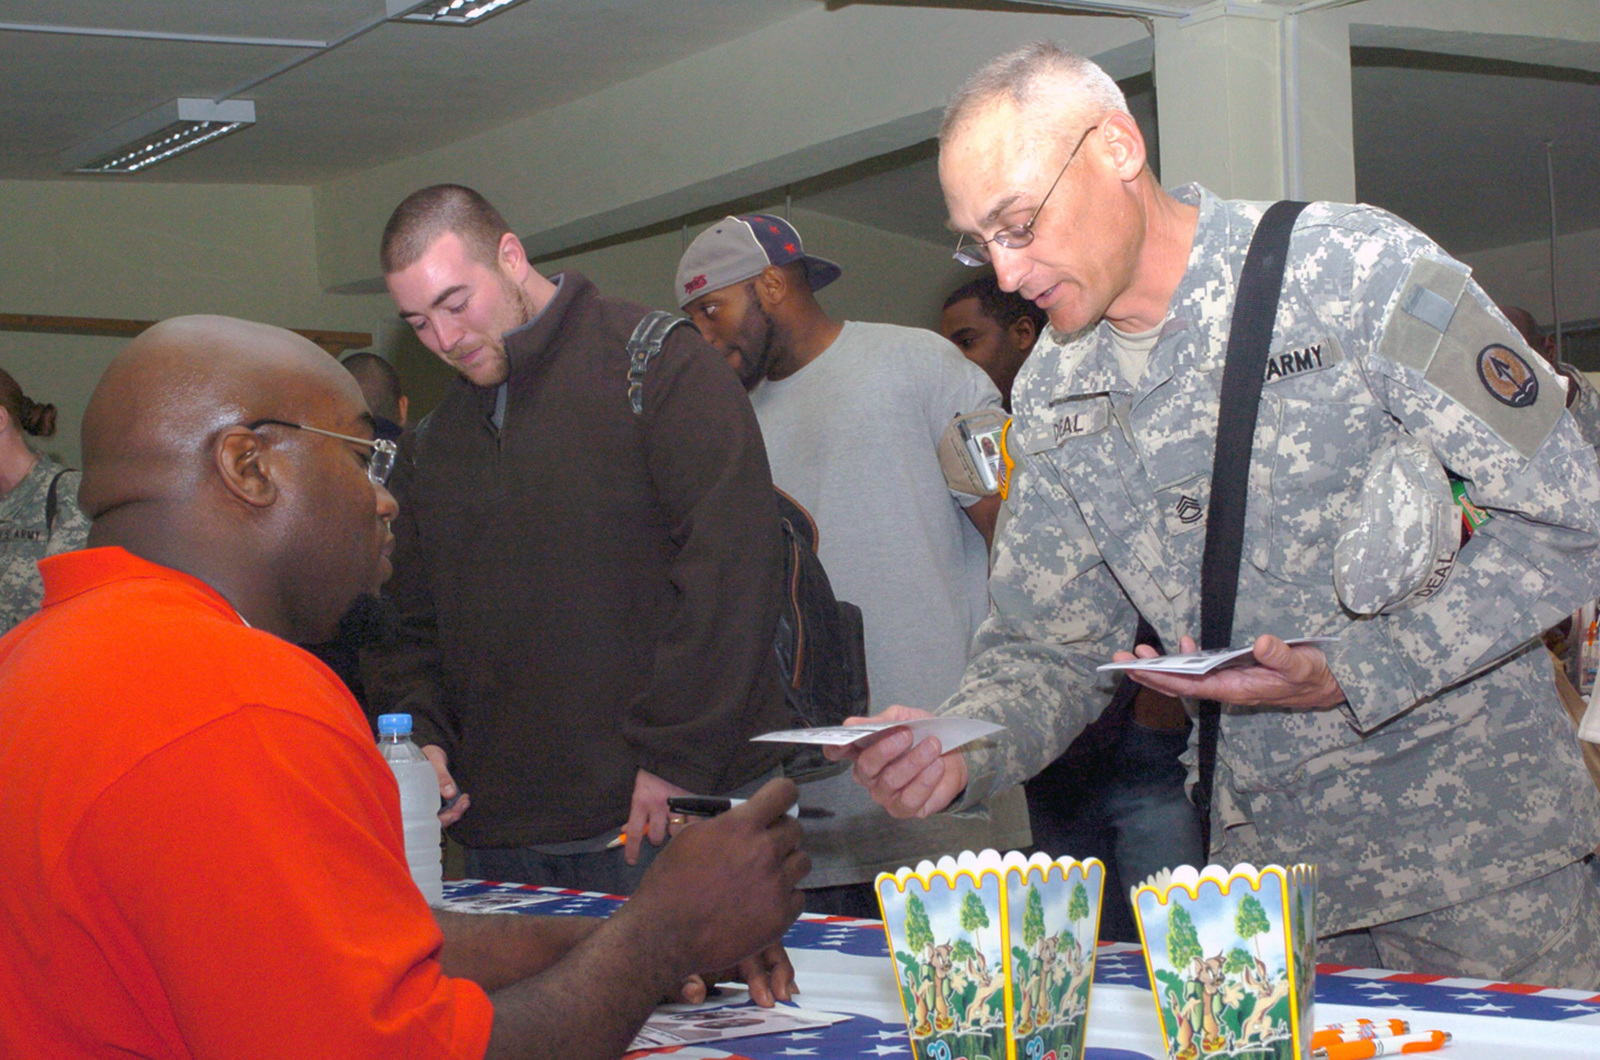 U.S. Army SGT. 1ST Class James Deal (right), 3rd Infantry Division, chats with Kansas City CHIEF's Football Player Will Shields (left) on March 6, 2007, at Camp Victory, Salah ad Din Province, Iraq, during Operation Iraqi Freedom.  (U.S. Army photo by Laura M. Bigenho) (Released)